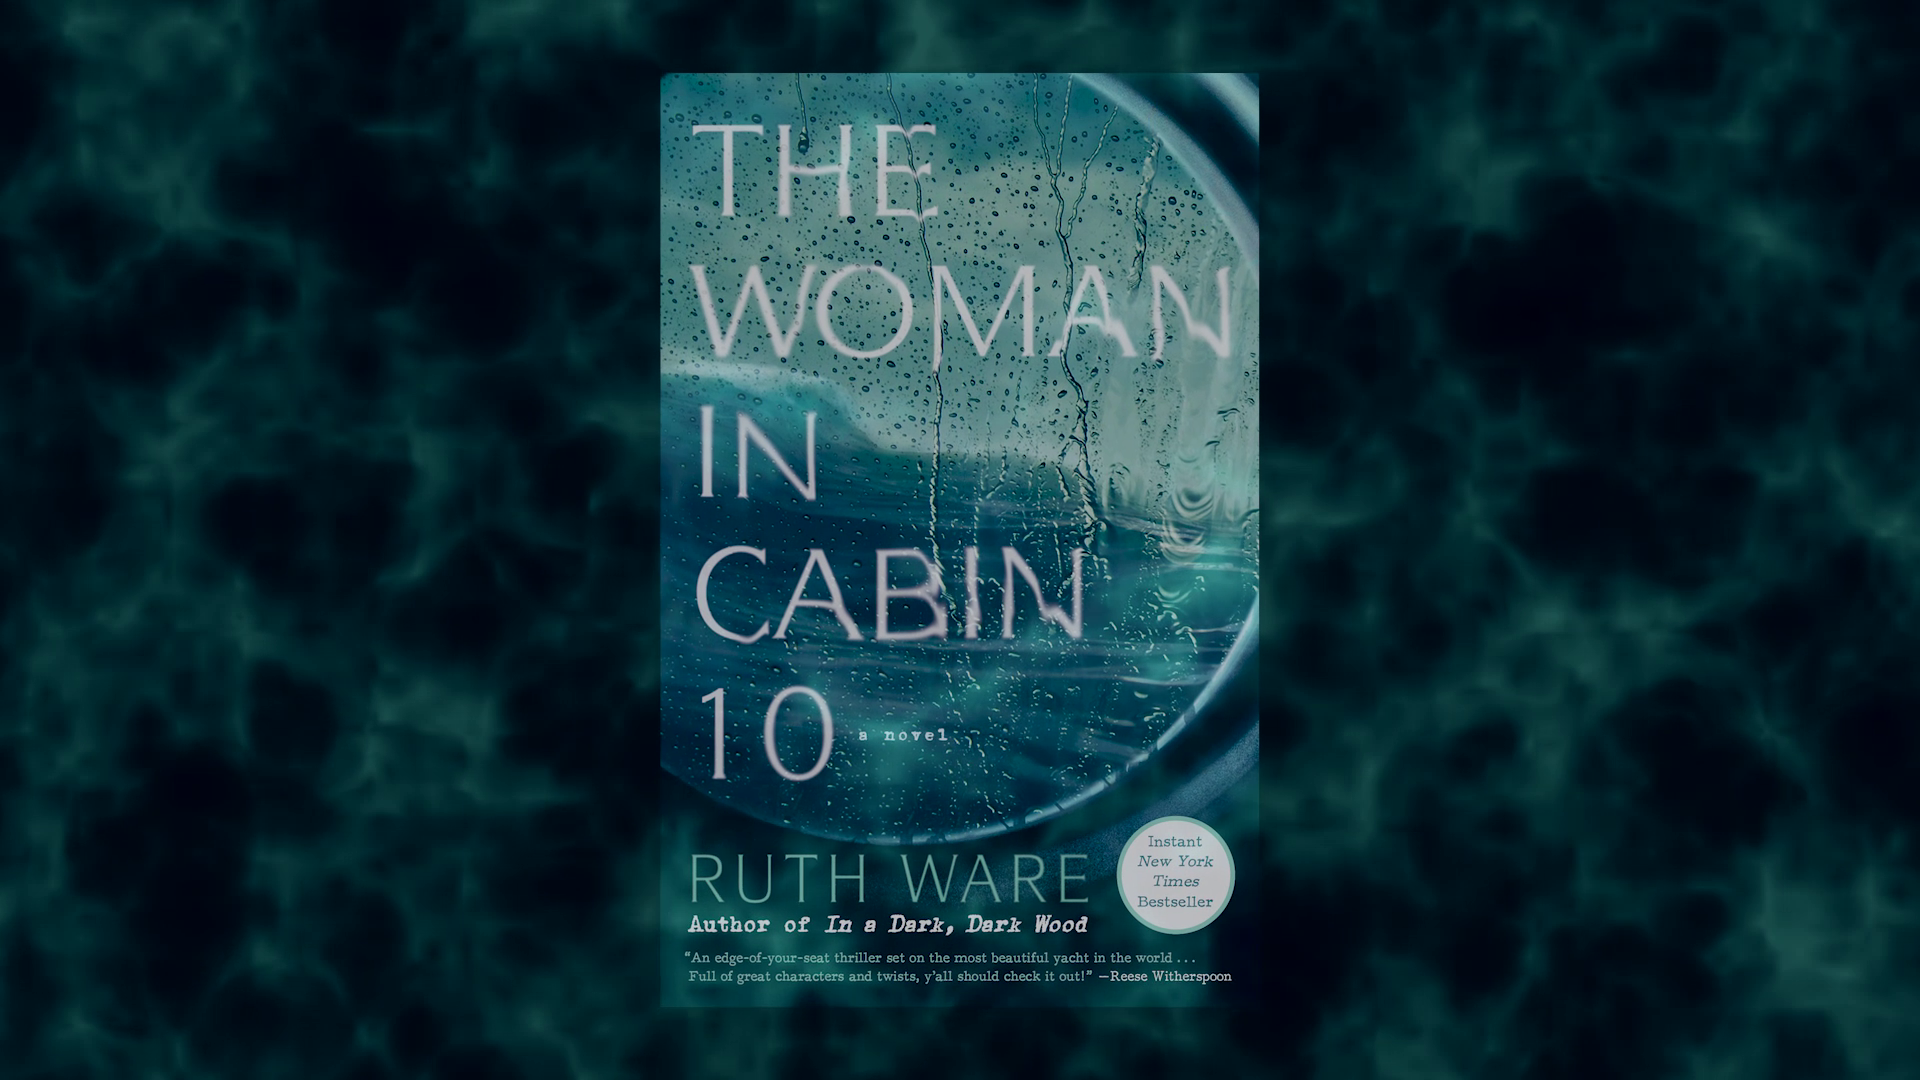 Inspirations for THE WOMAN IN CABIN 10